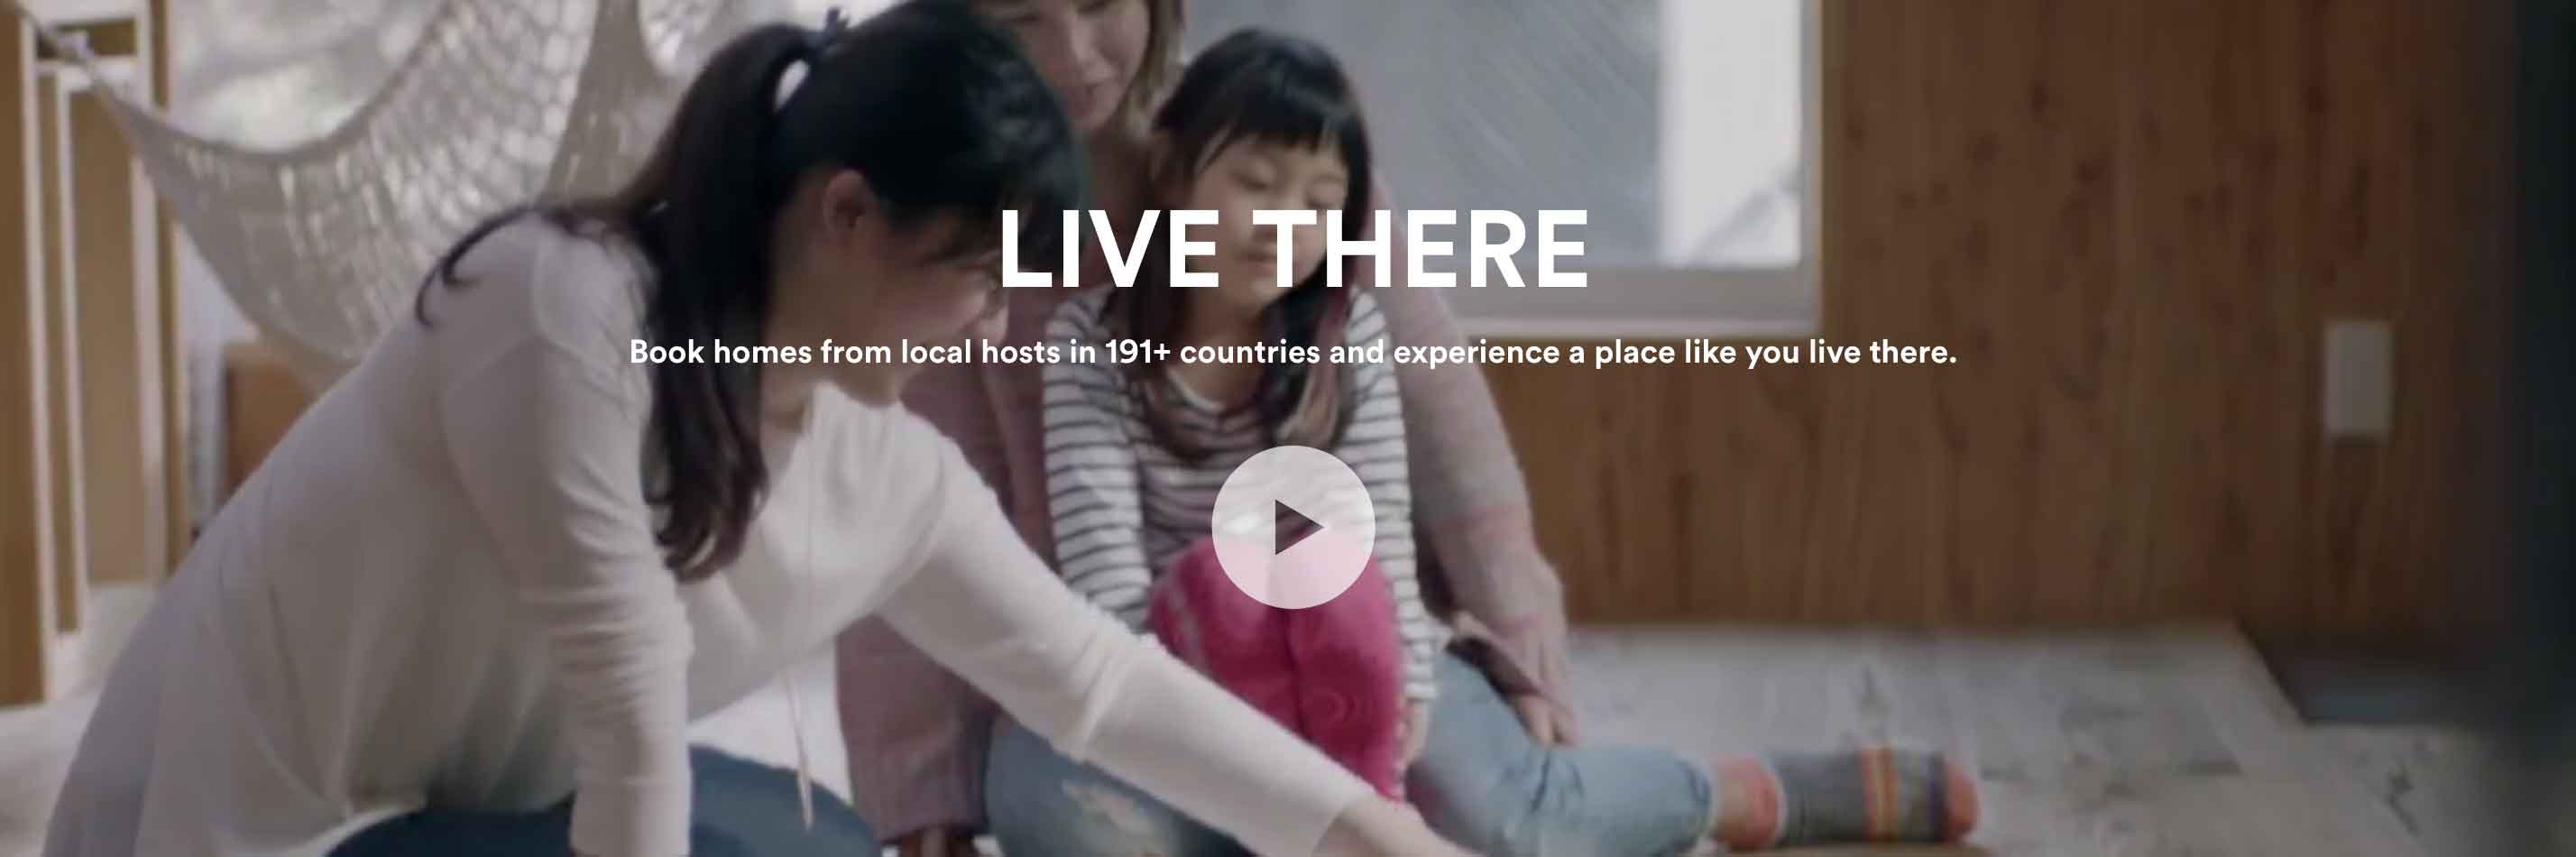 Airbnb Home Page Supoorting Image